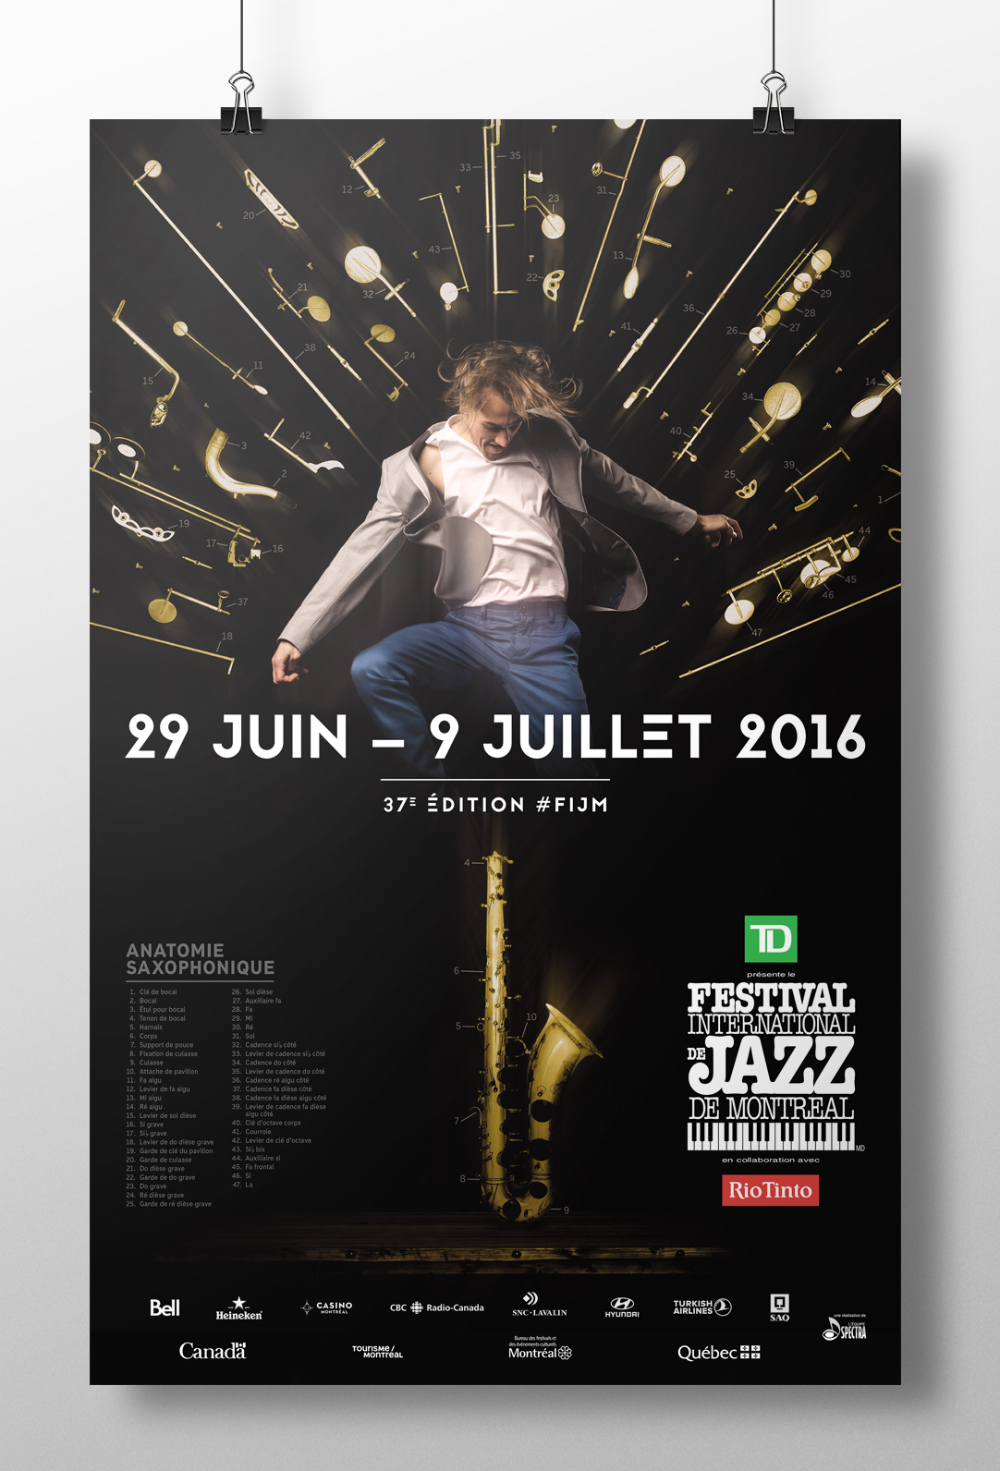 Festival International De Jazz De Montreal 2016 On Behance